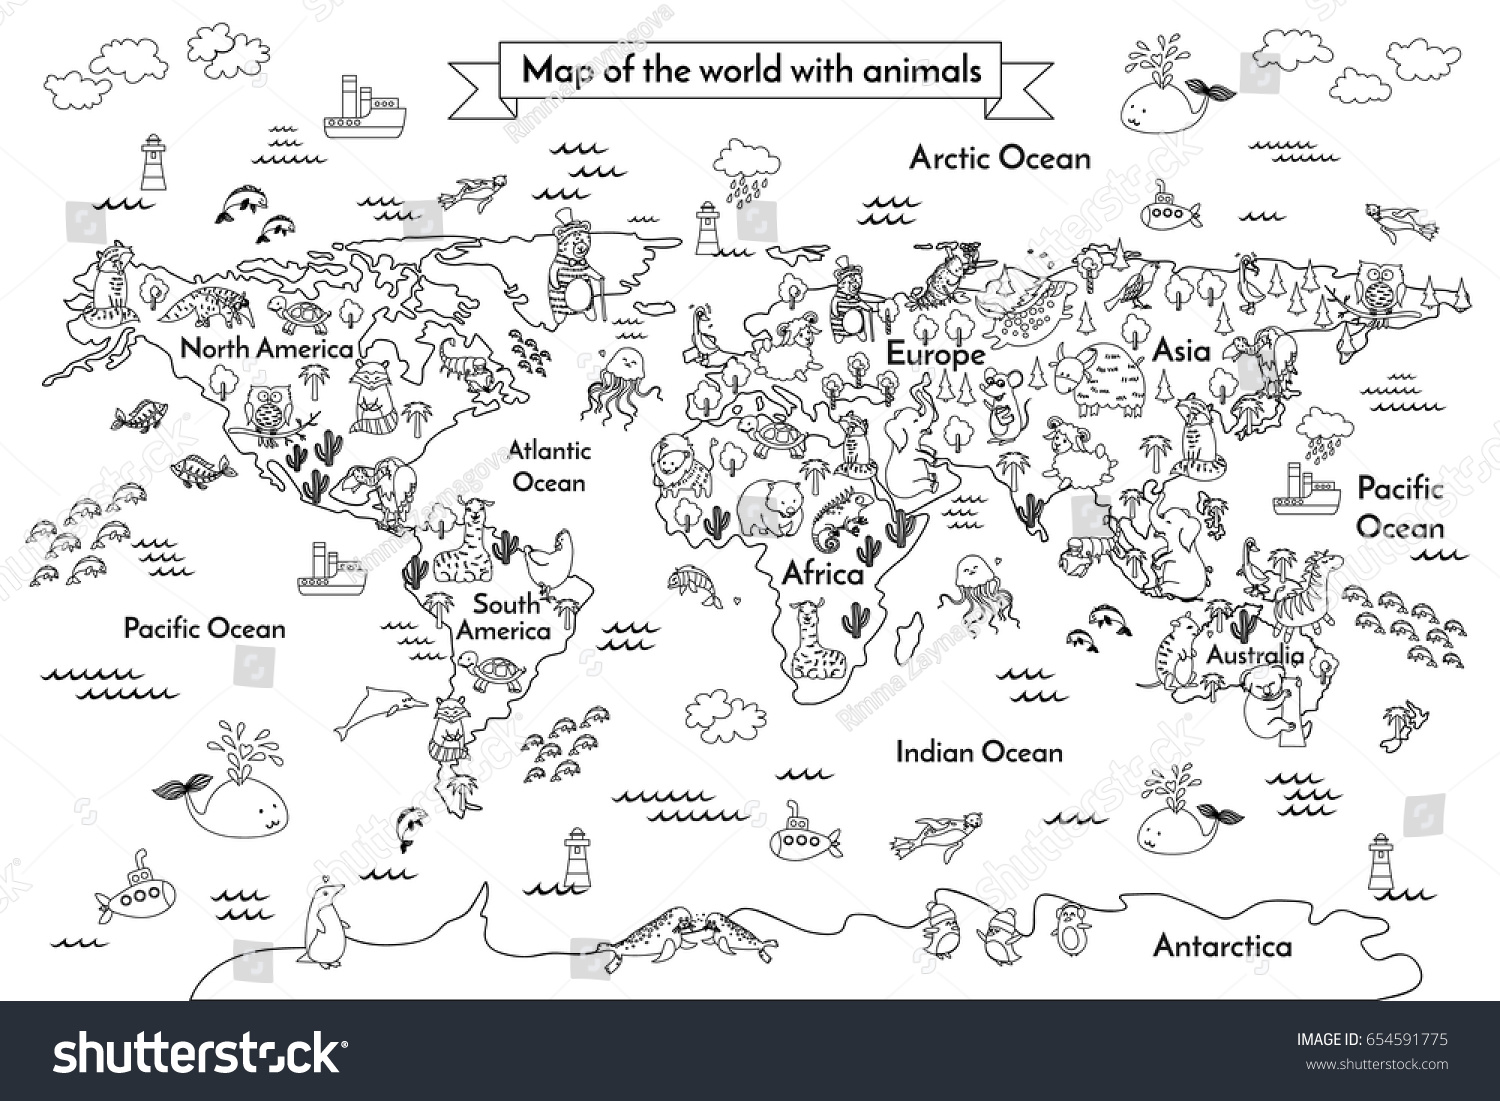 Old Fashioned Coloring Map Of The World Composition - Coloring Paper ...